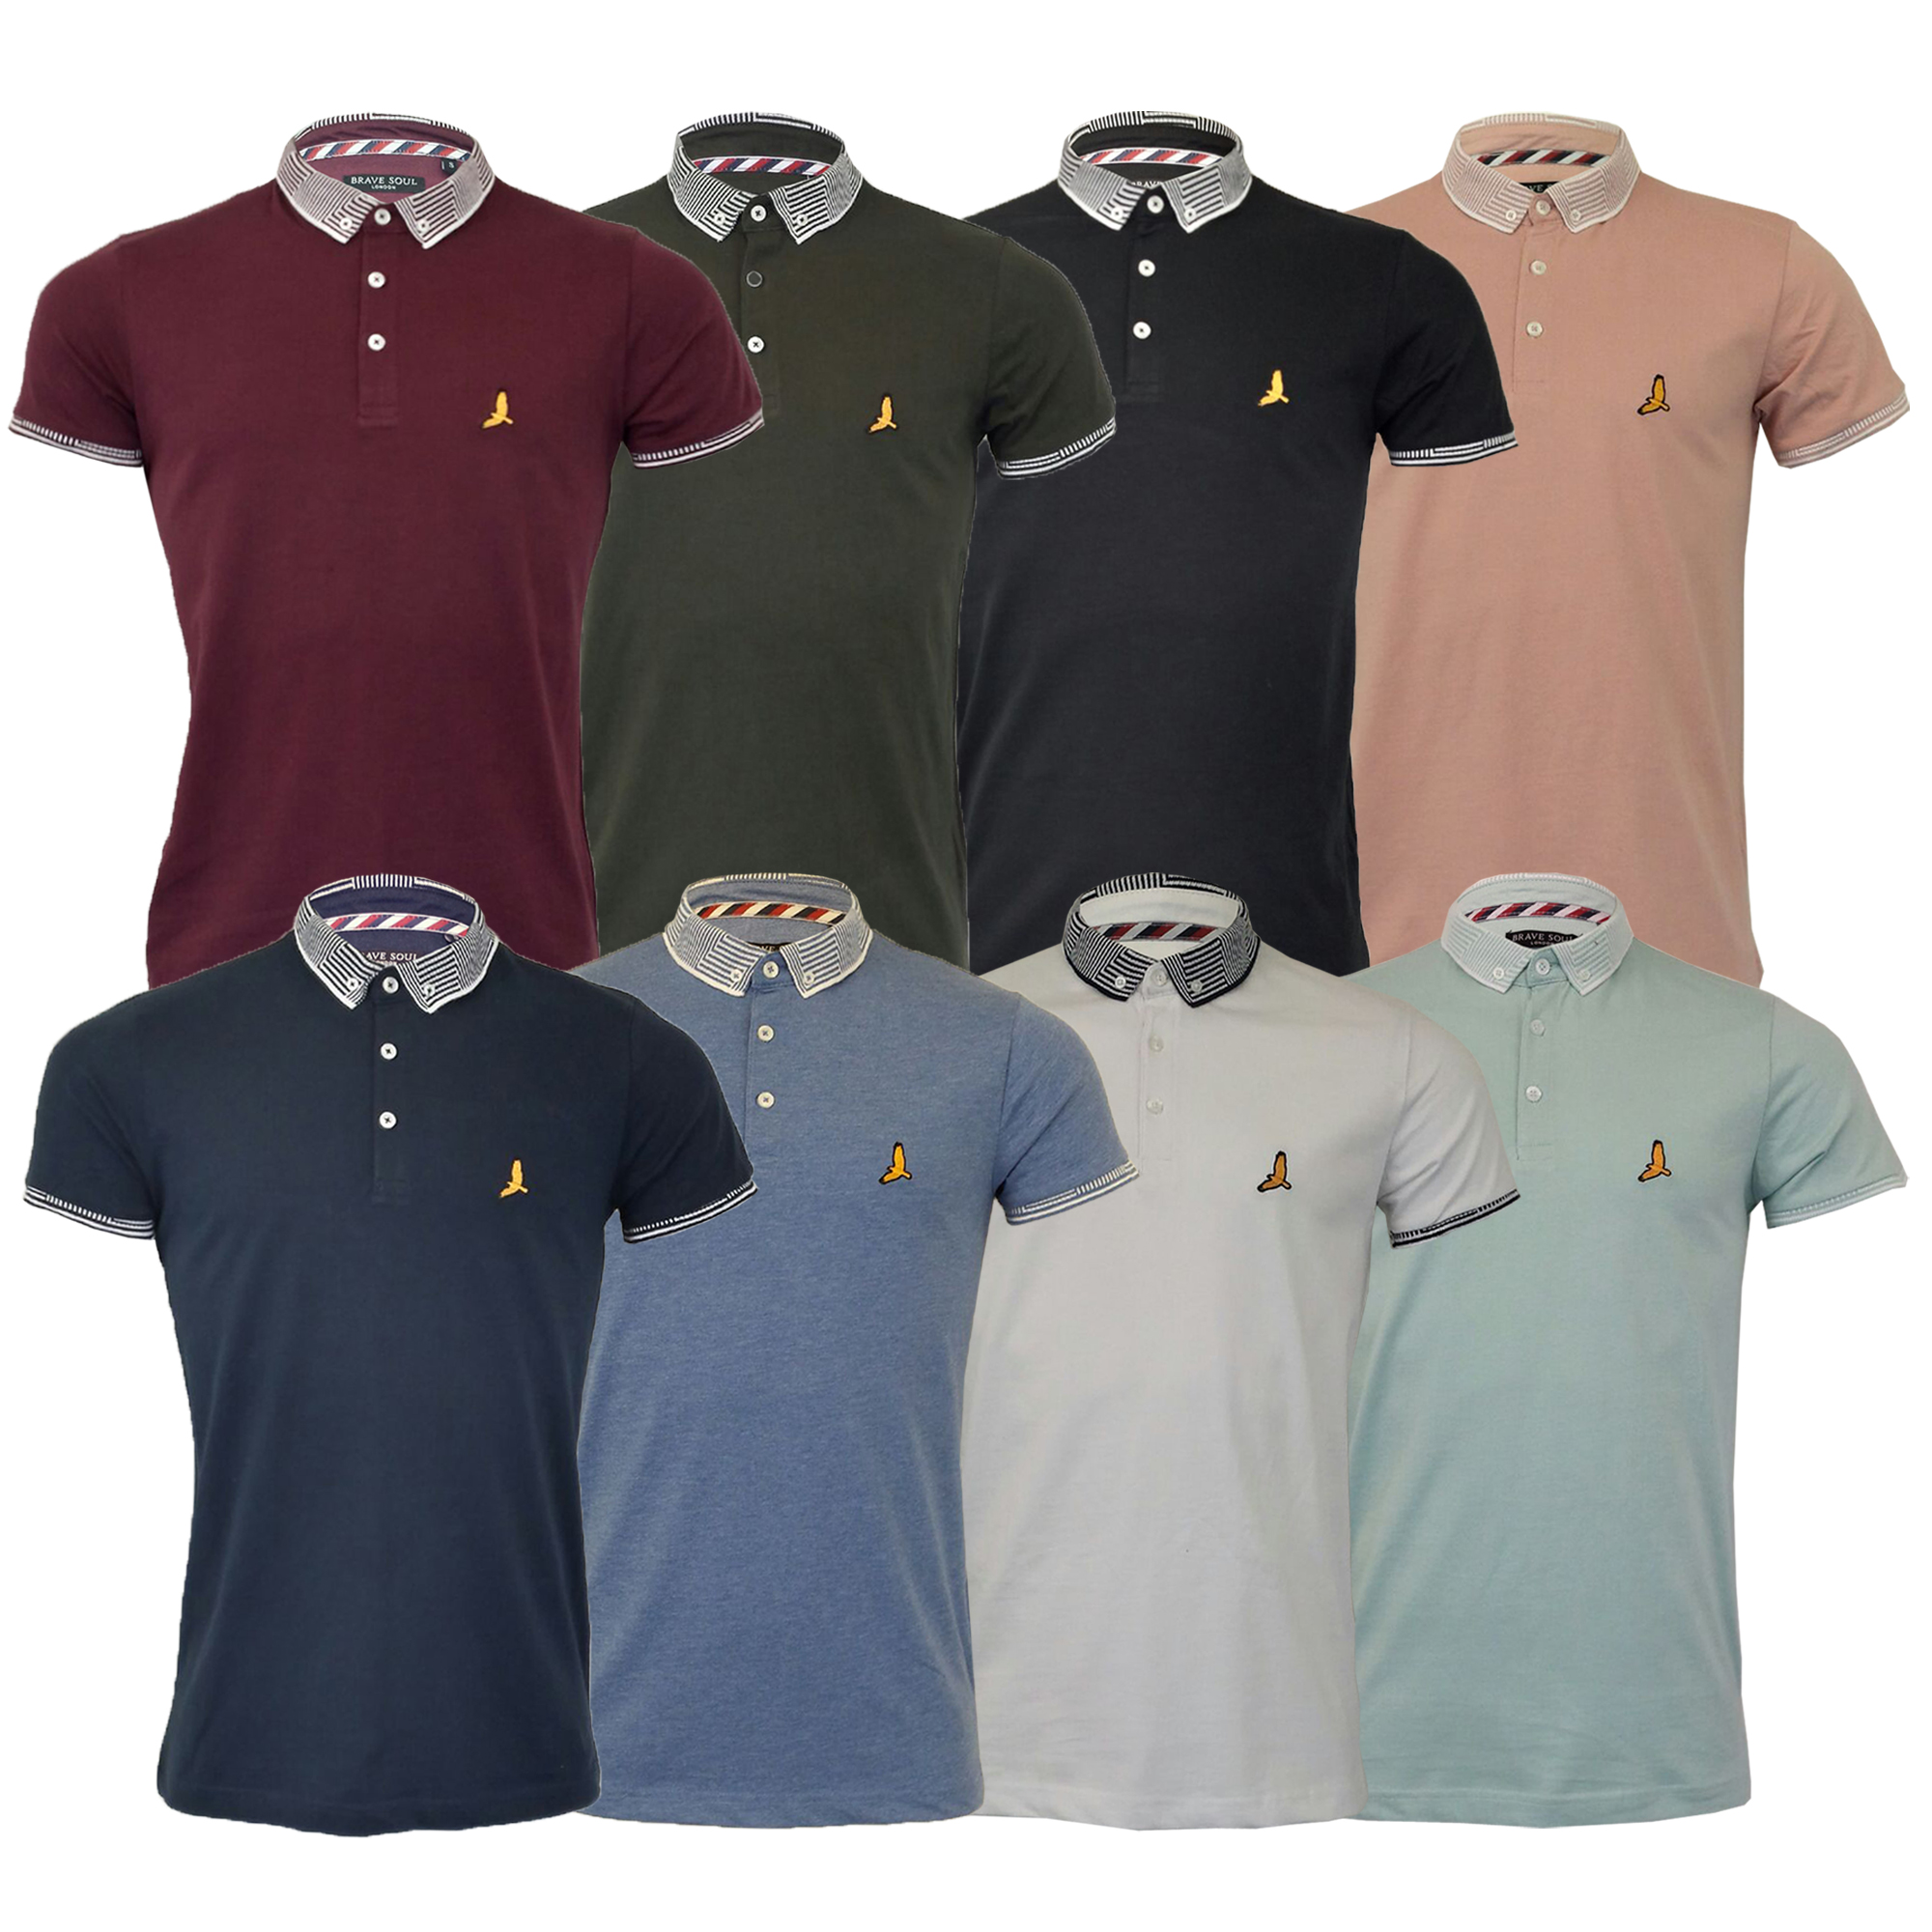 e7597184 Details about Mens Polo T Shirt Brave Soul Glover Short Sleeved Cotton  Collared Casual Summer